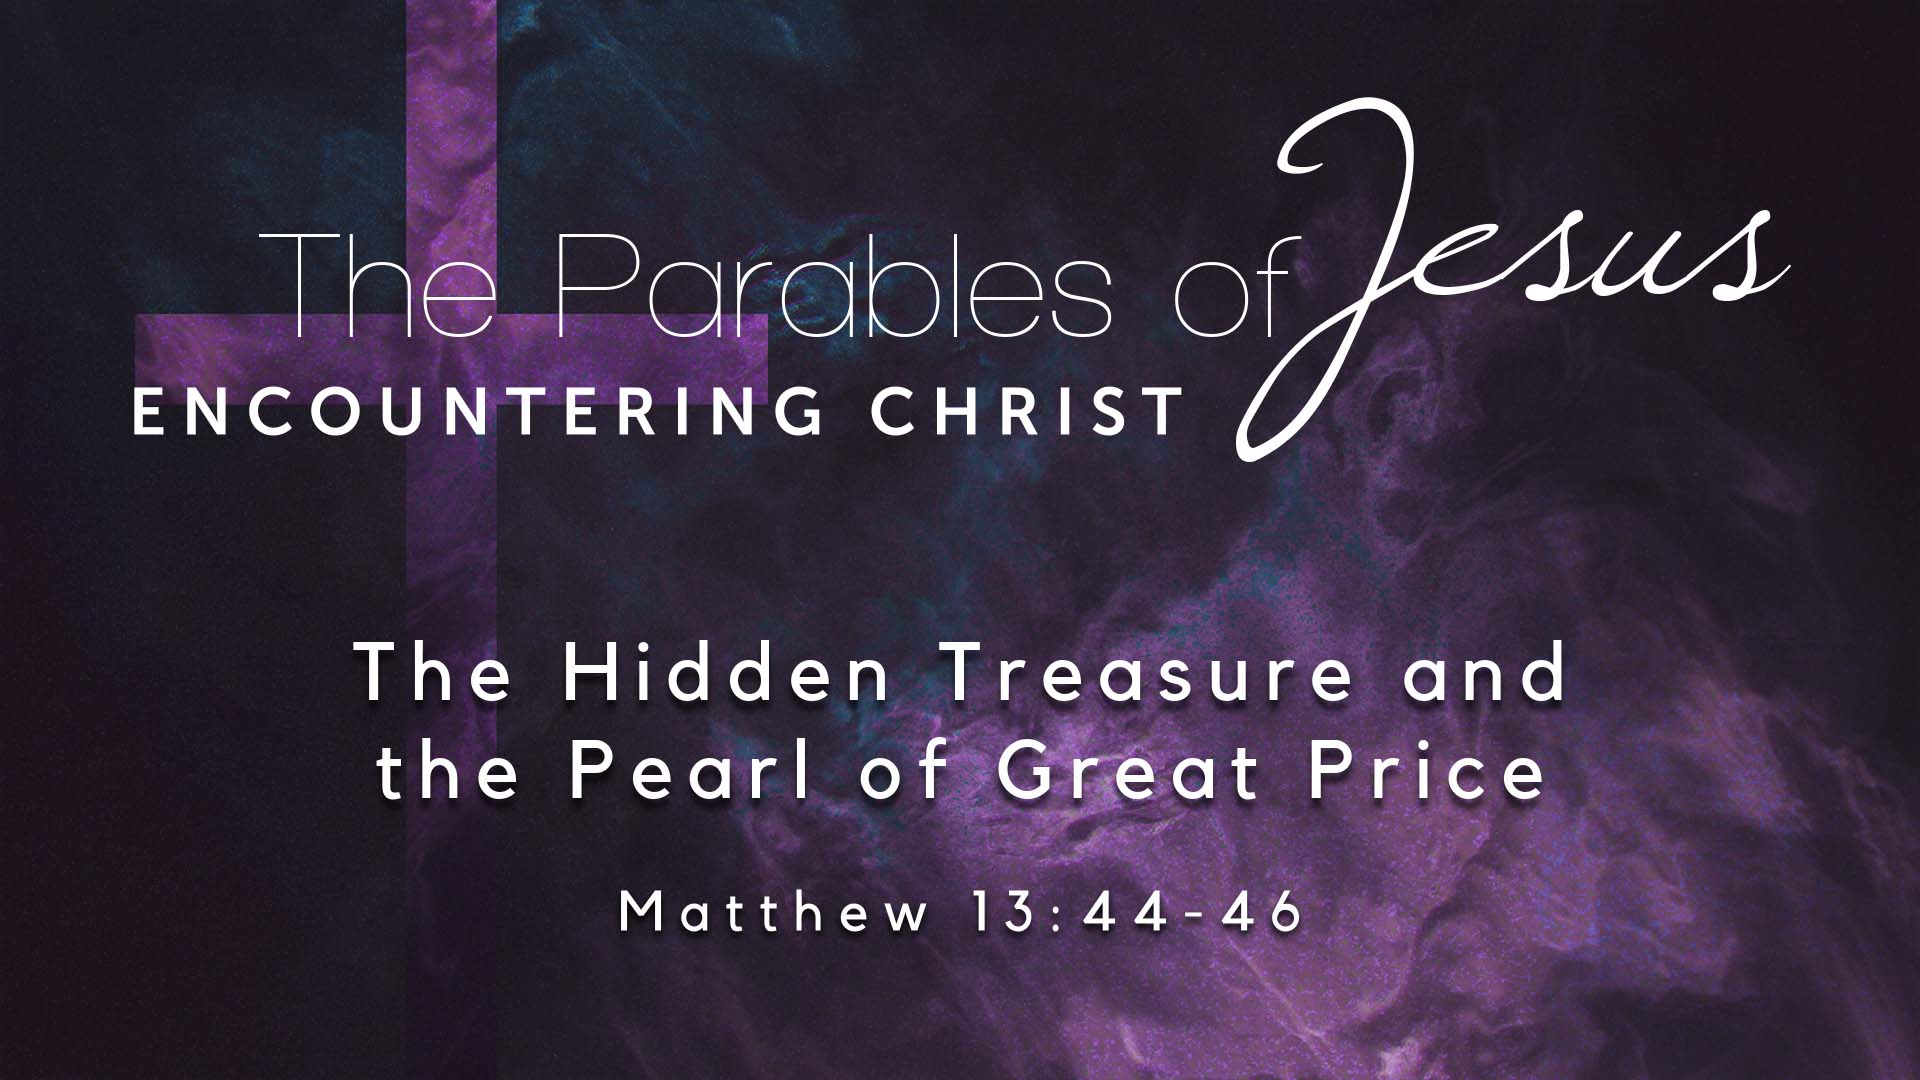 Image for the sermon The Hidden Treasure and the Pearl of Great Price